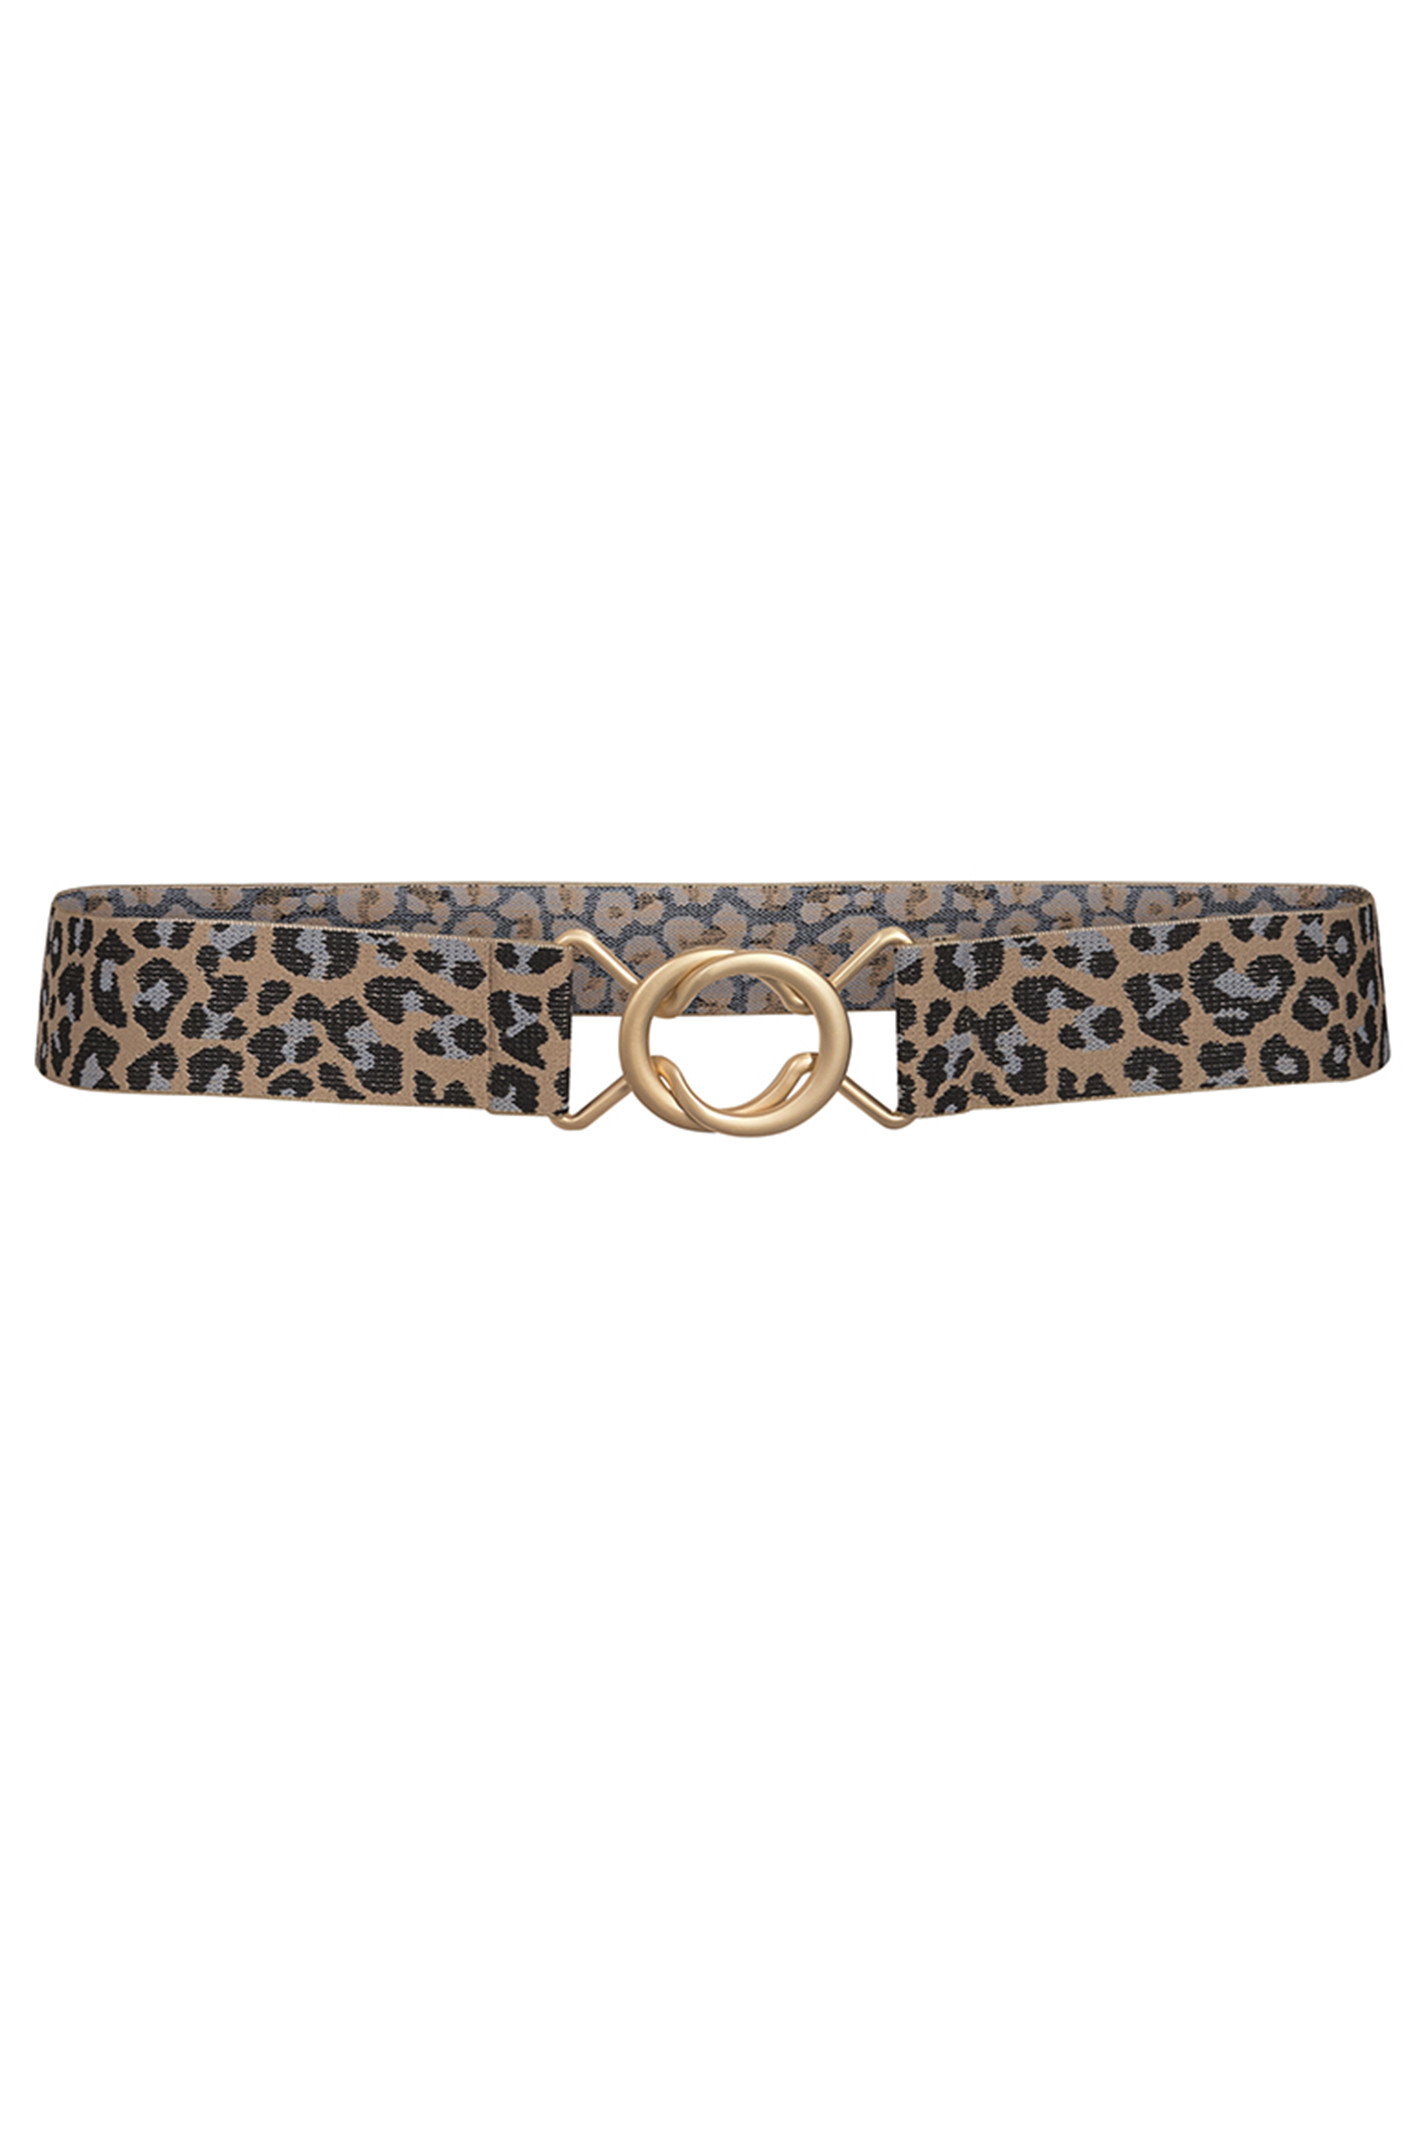 CO'COUTURE LEO 99058 Gold